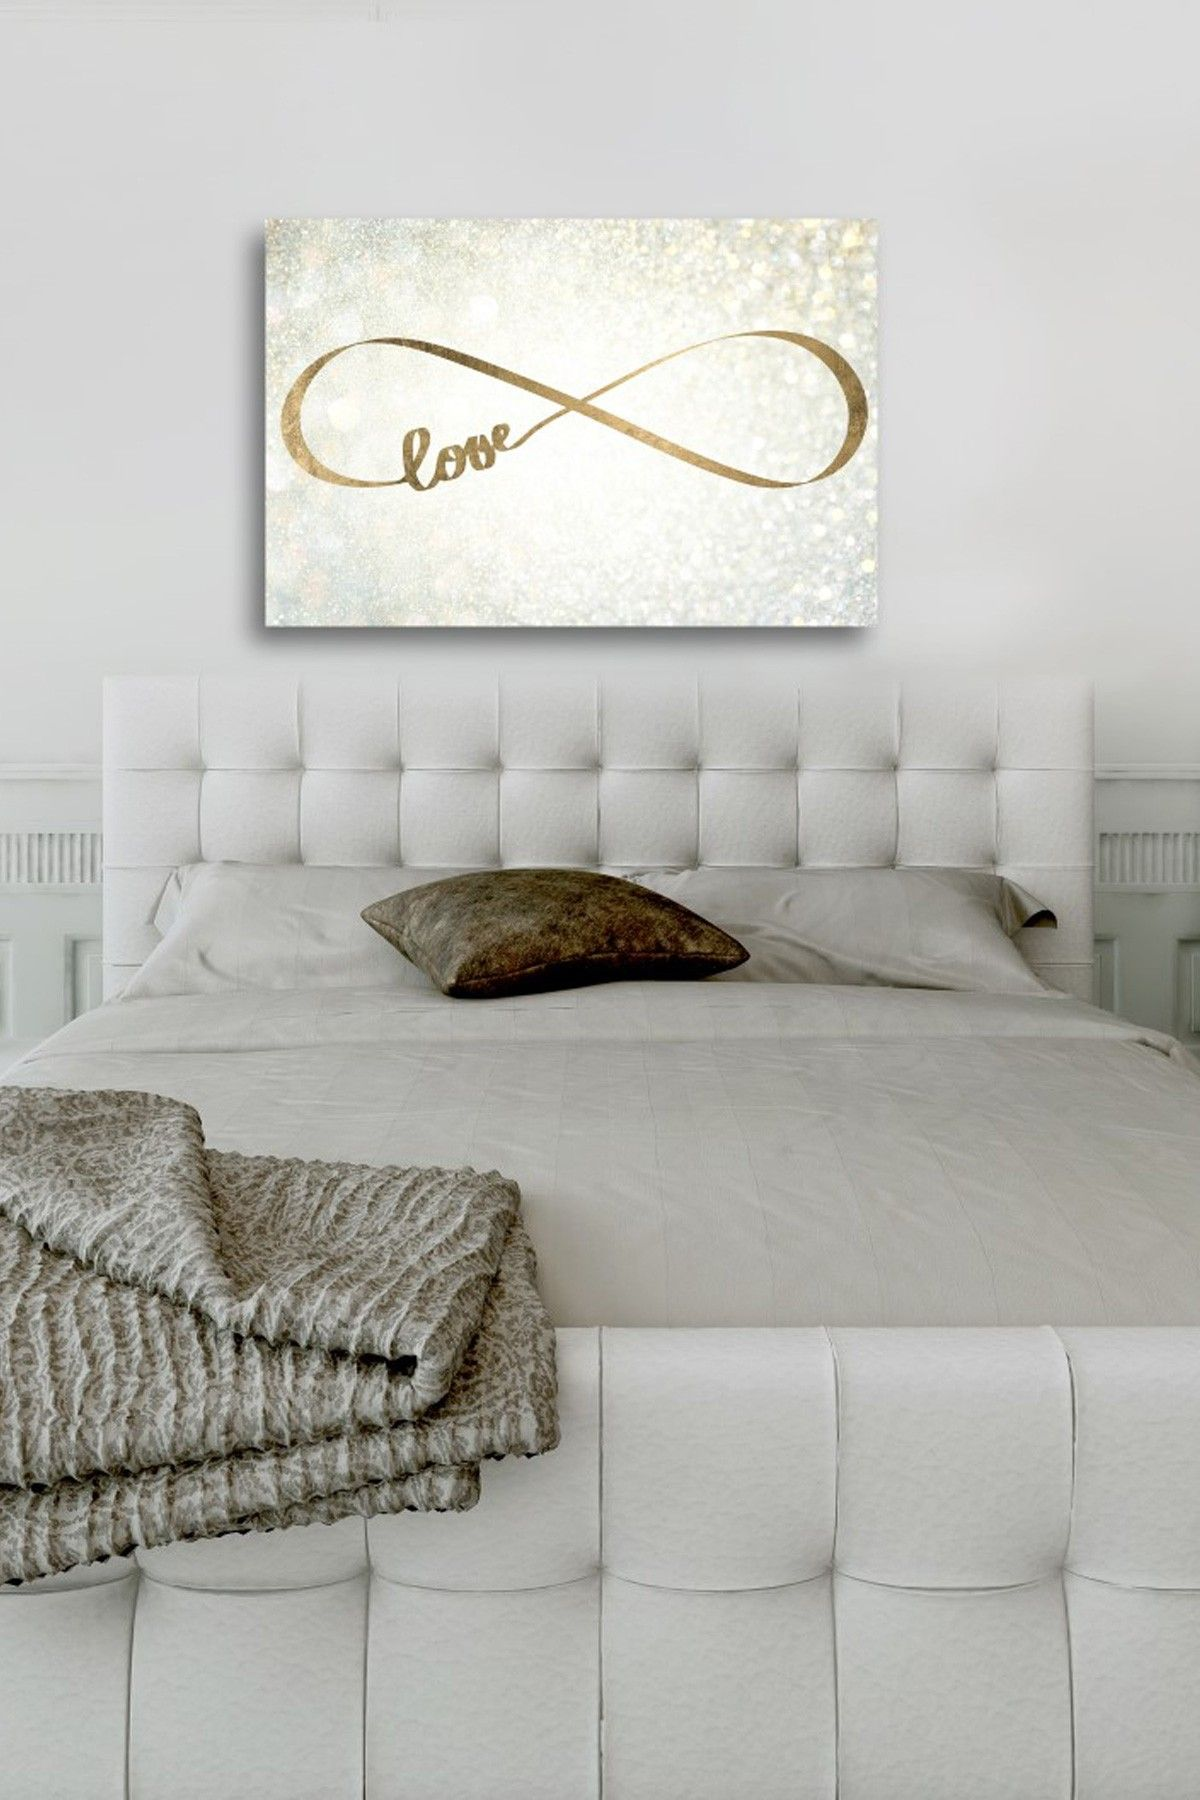 Oliver Gal Sparkle Love Canvas Art 89.00 - 269.00 Fine